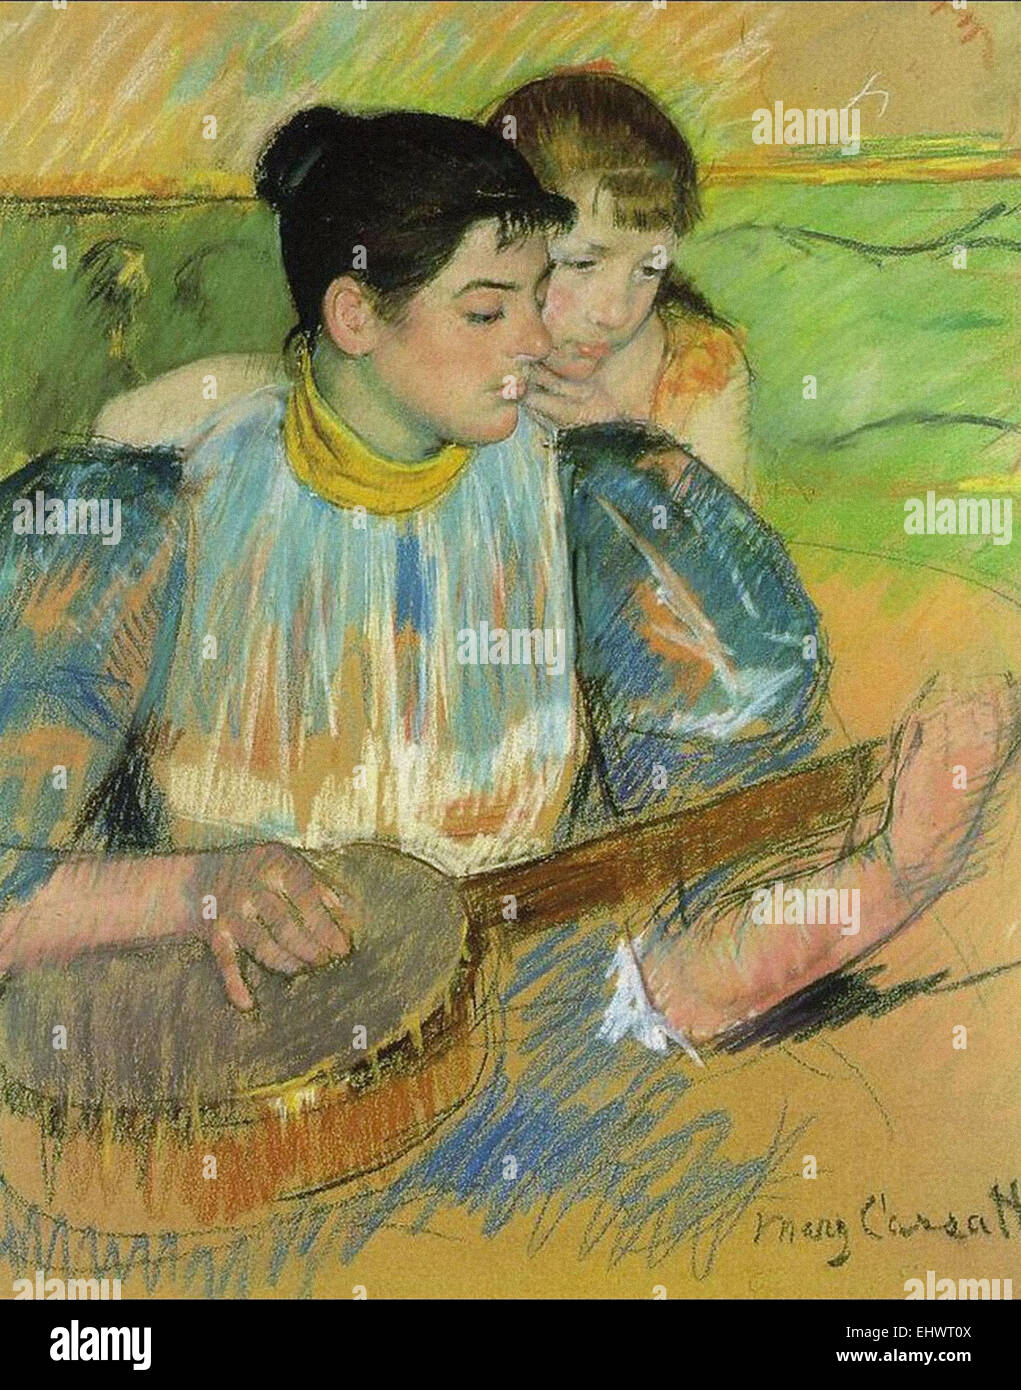 Mary Cassatt  The Banjo Lesson - Stock Image